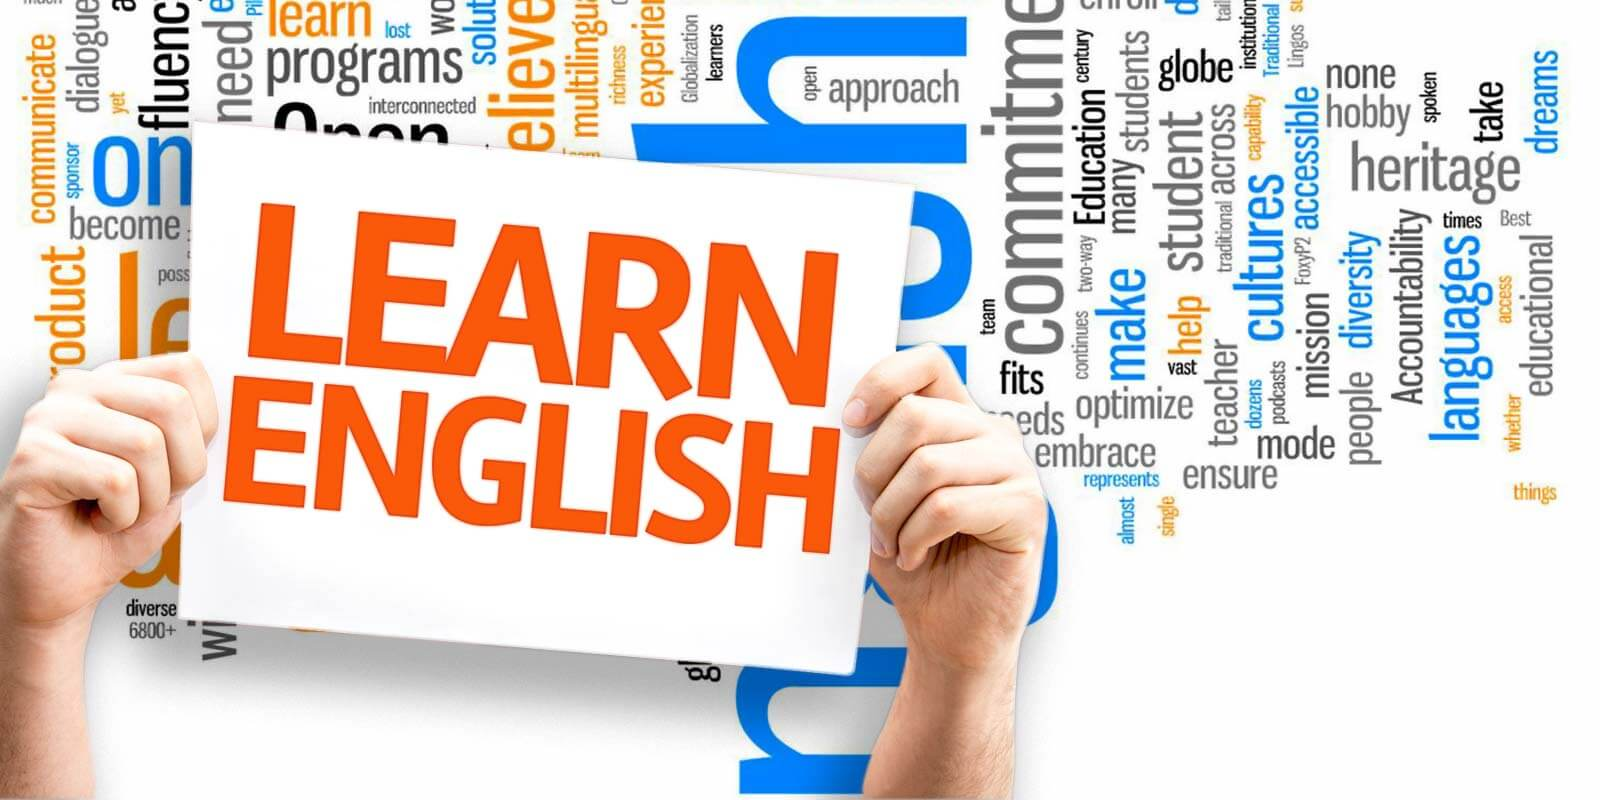 learn-English-slide-1600x800px